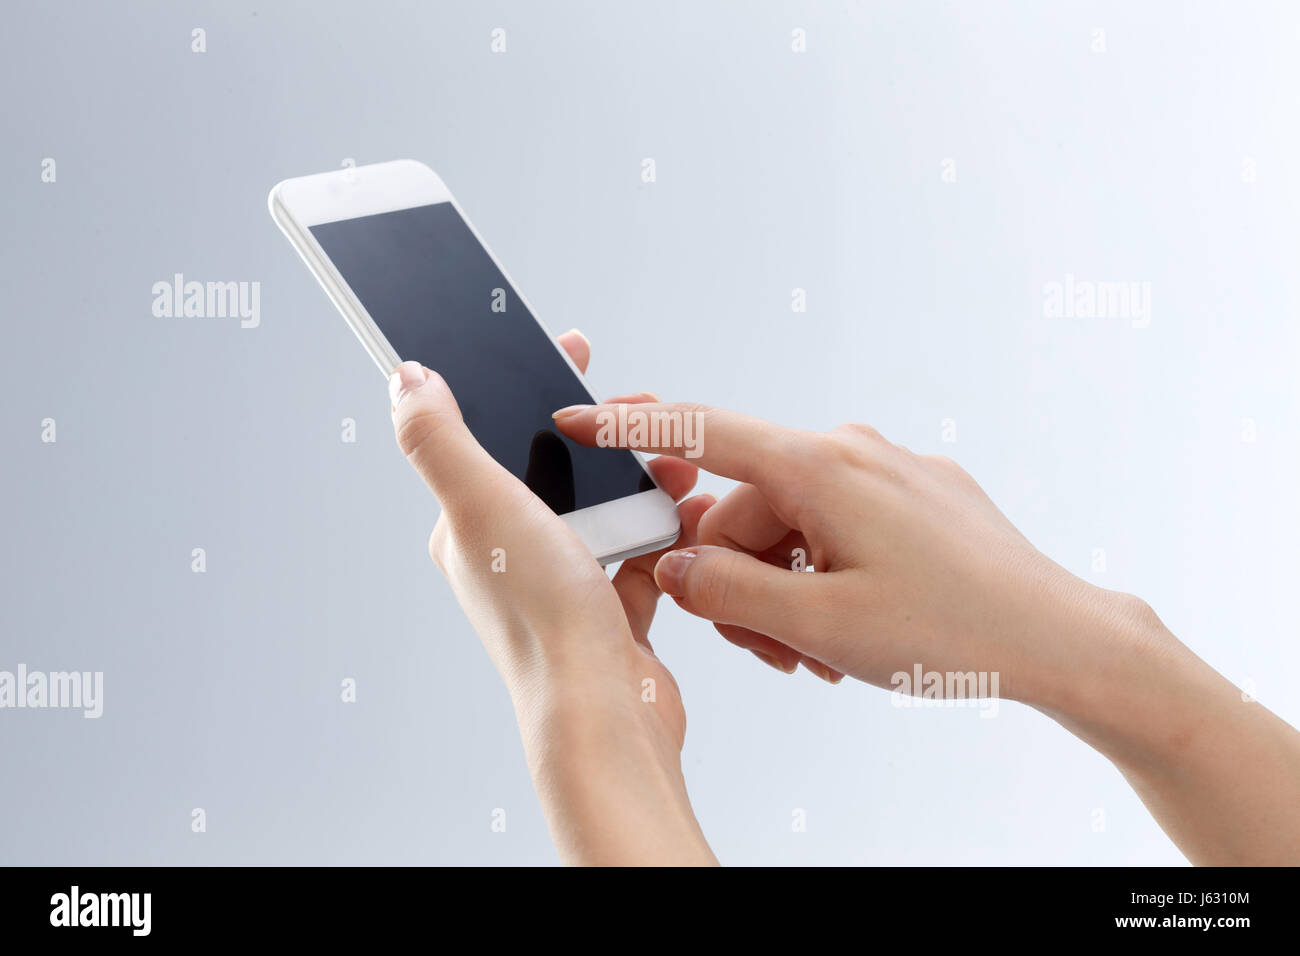 Hand holding mobile phone - Stock Image